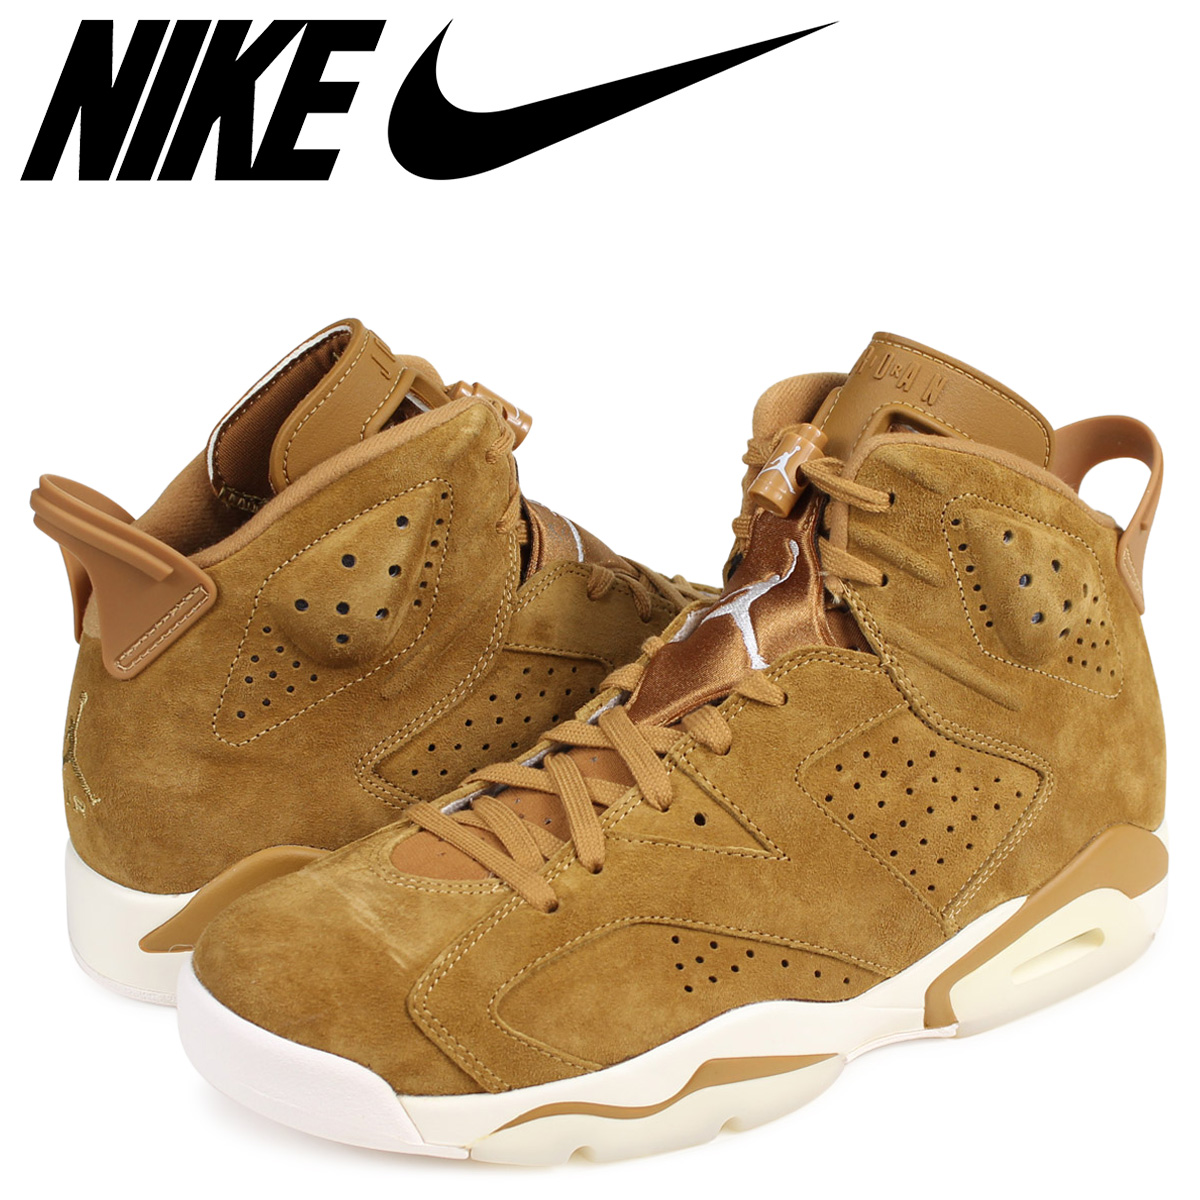 8a575dca036ba4 ALLSPORTS  NIKE AIR JORDAN 6 RETRO WHEAT Nike Air Jordan 6 nostalgic ...